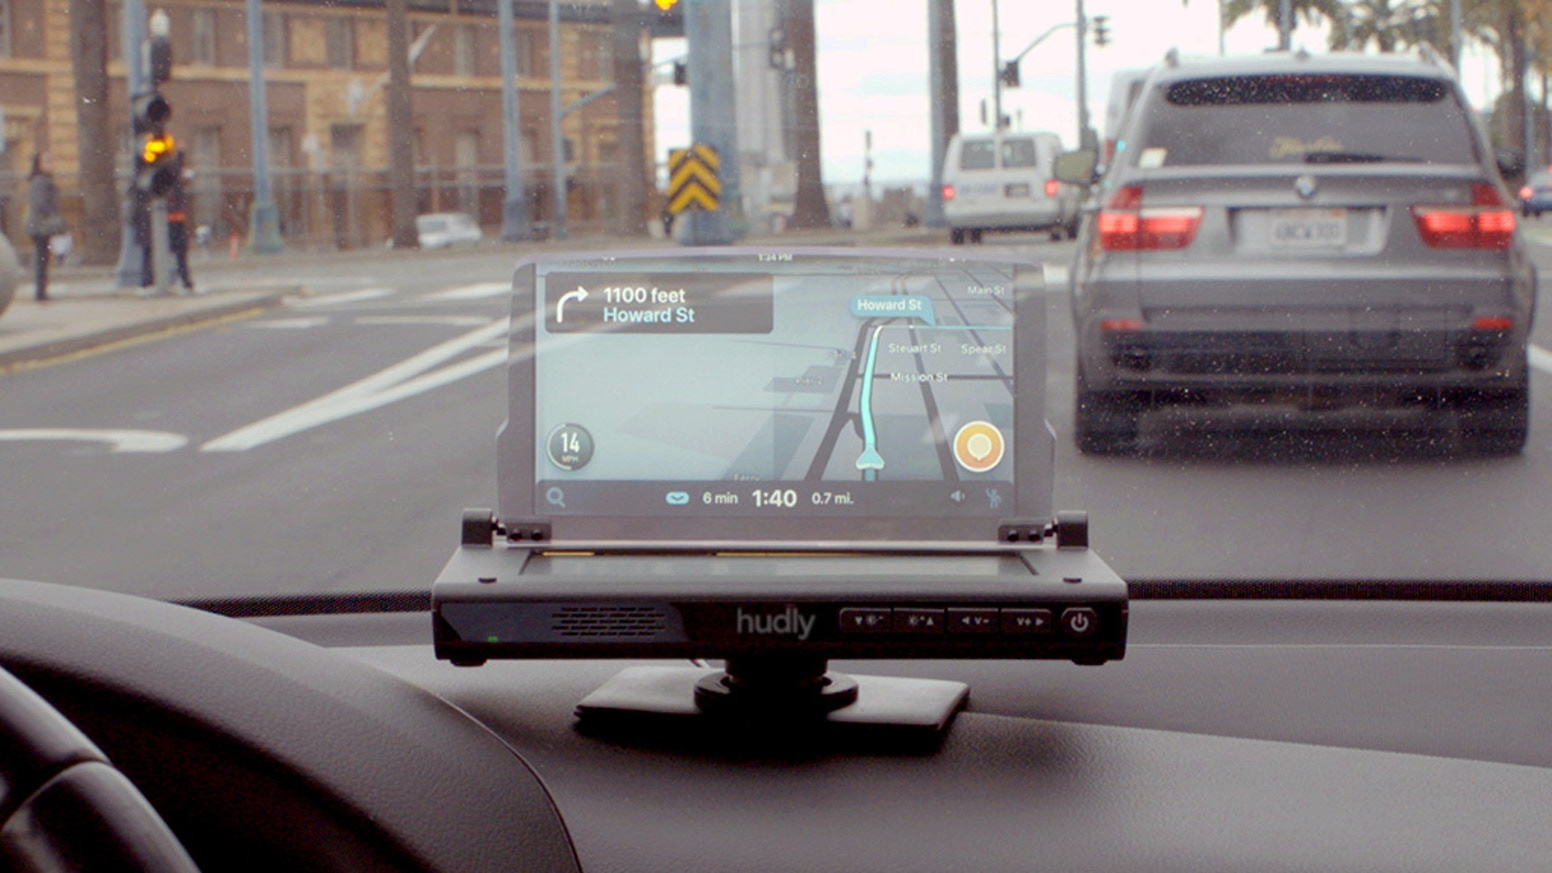 Drive smarter with a head-up display, a safer way to get directions, calls and texts without taking your eyes off the road. Order now for a special intro discount - $50 off retail!